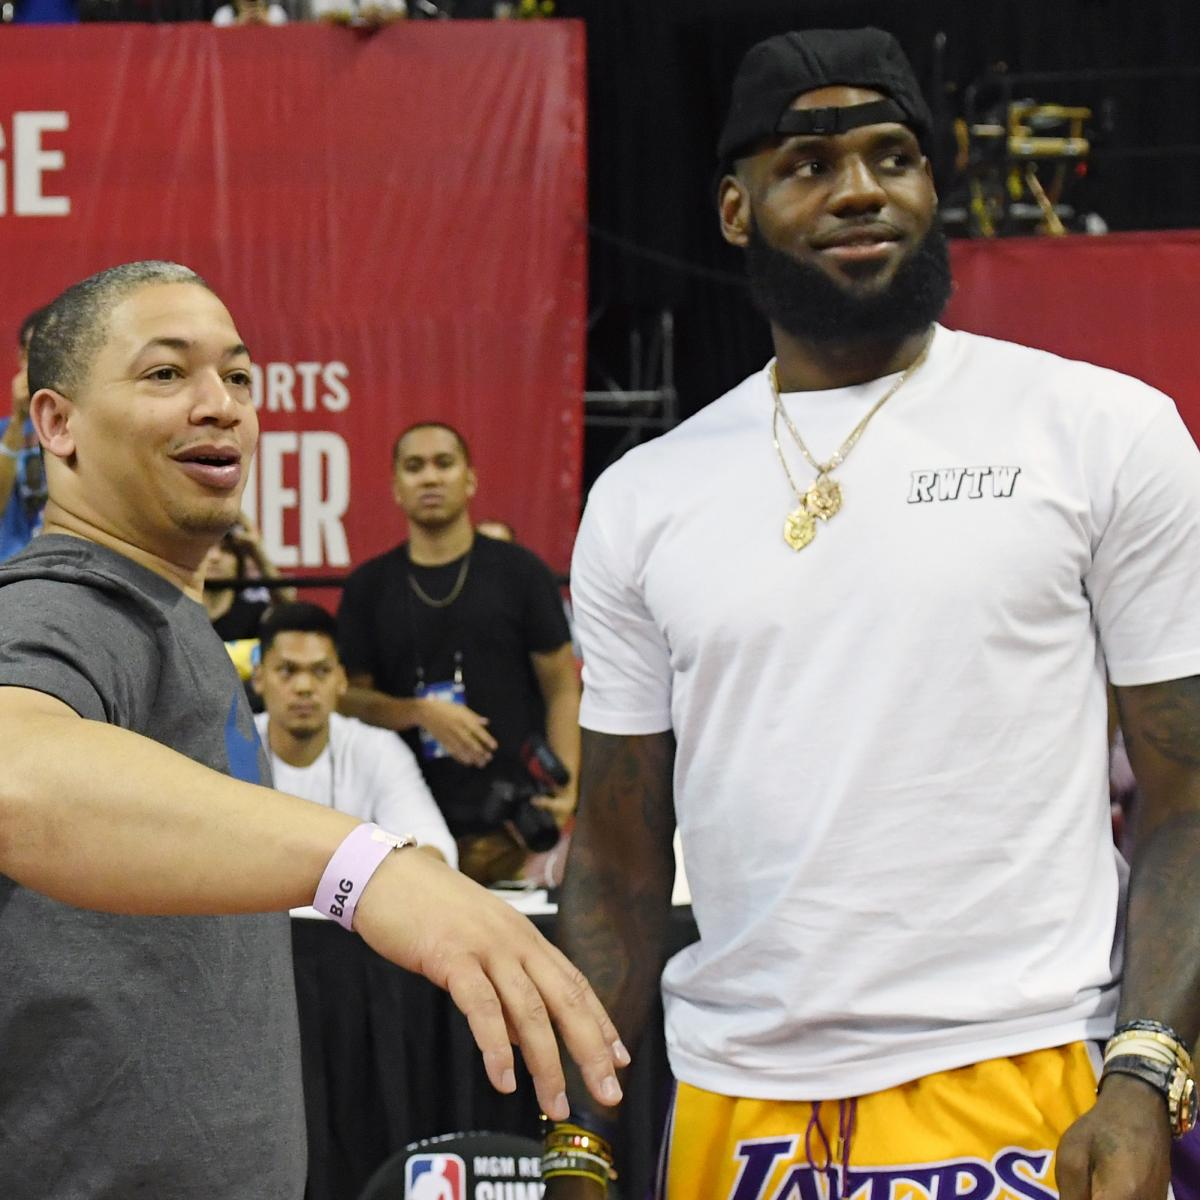 2018-19 NBA Odds: Win Totals Released for LeBron James' Lakers, Warriors, More